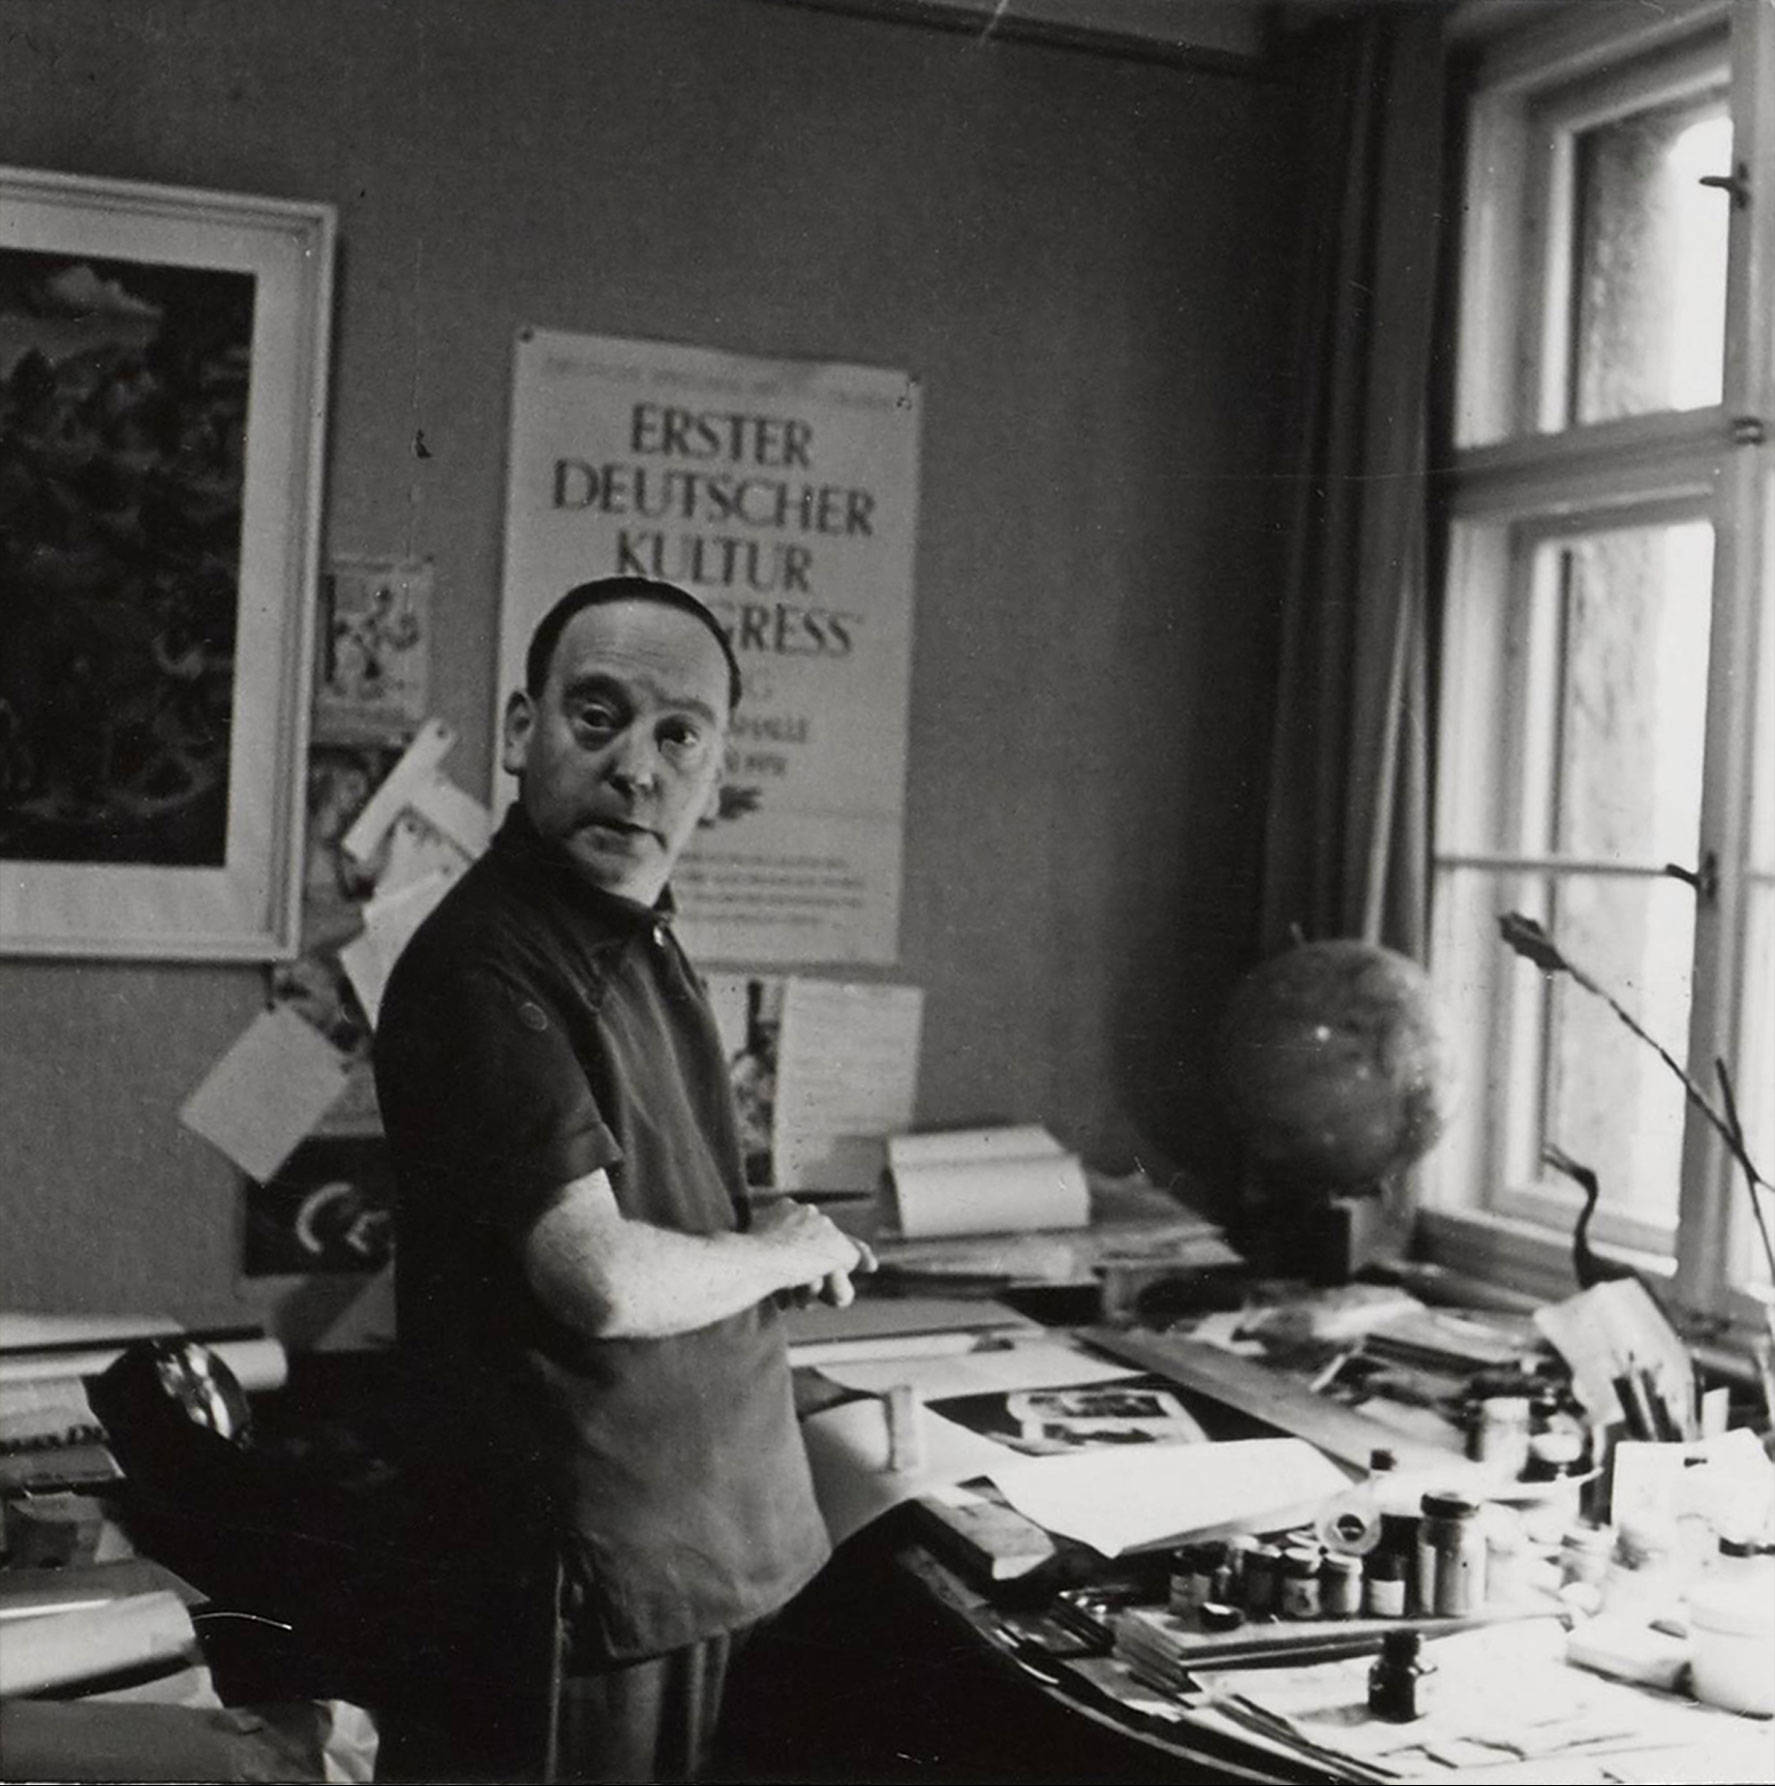 John Heartfield in his apartment at Friedrichstrasse, approx. 1958